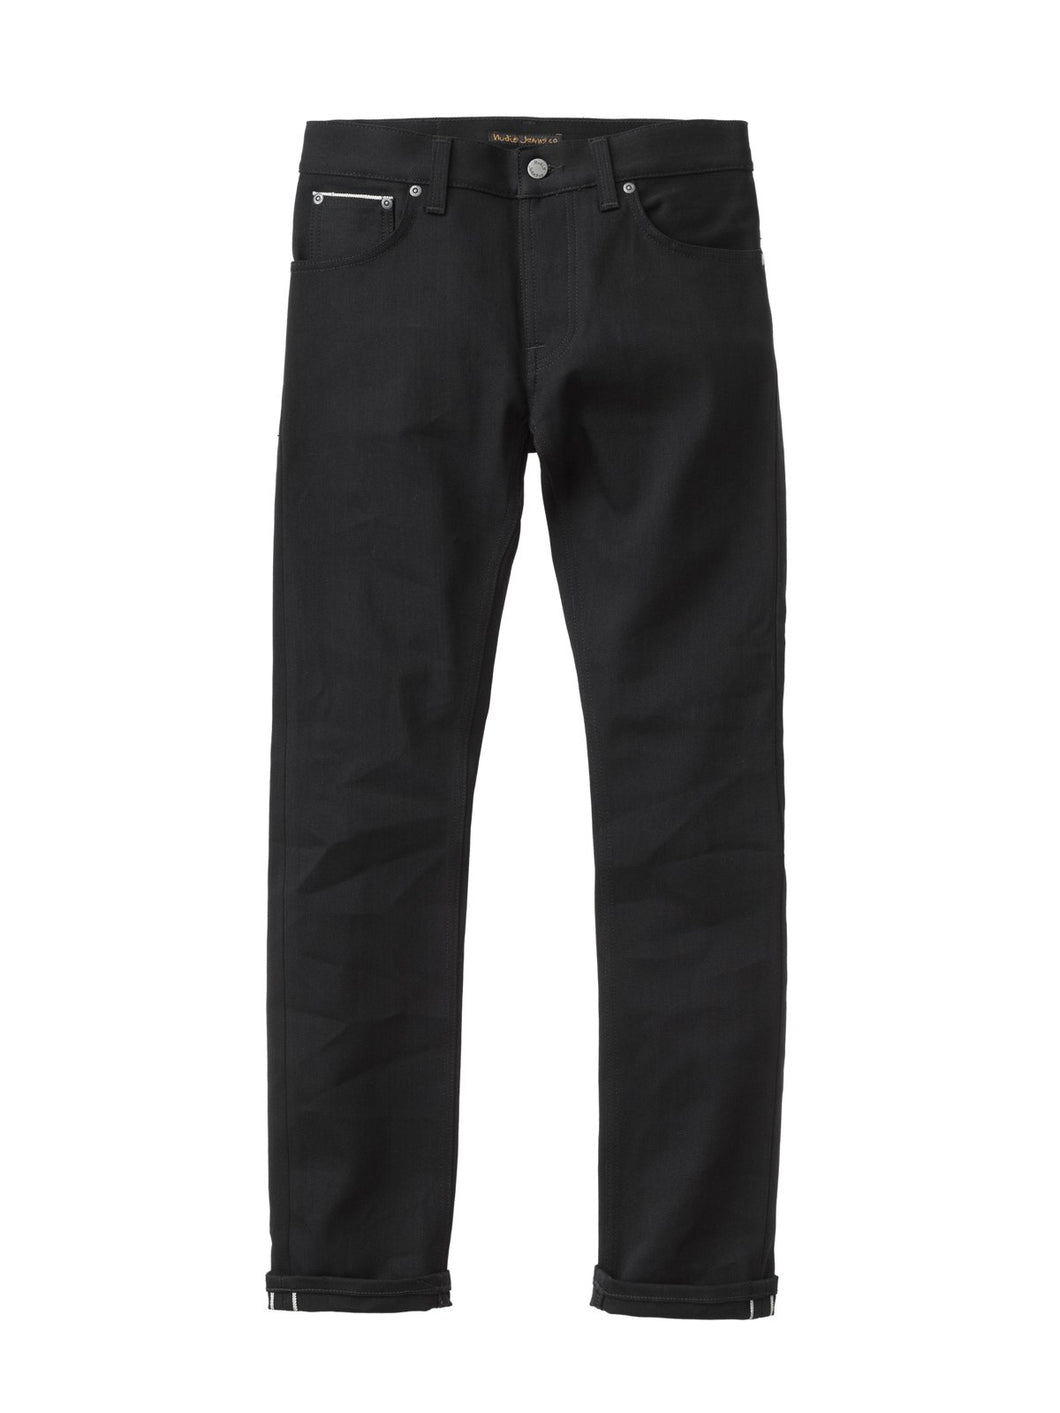 NUDIE JEANS Grim Tim Slim Straight Black Selvedge